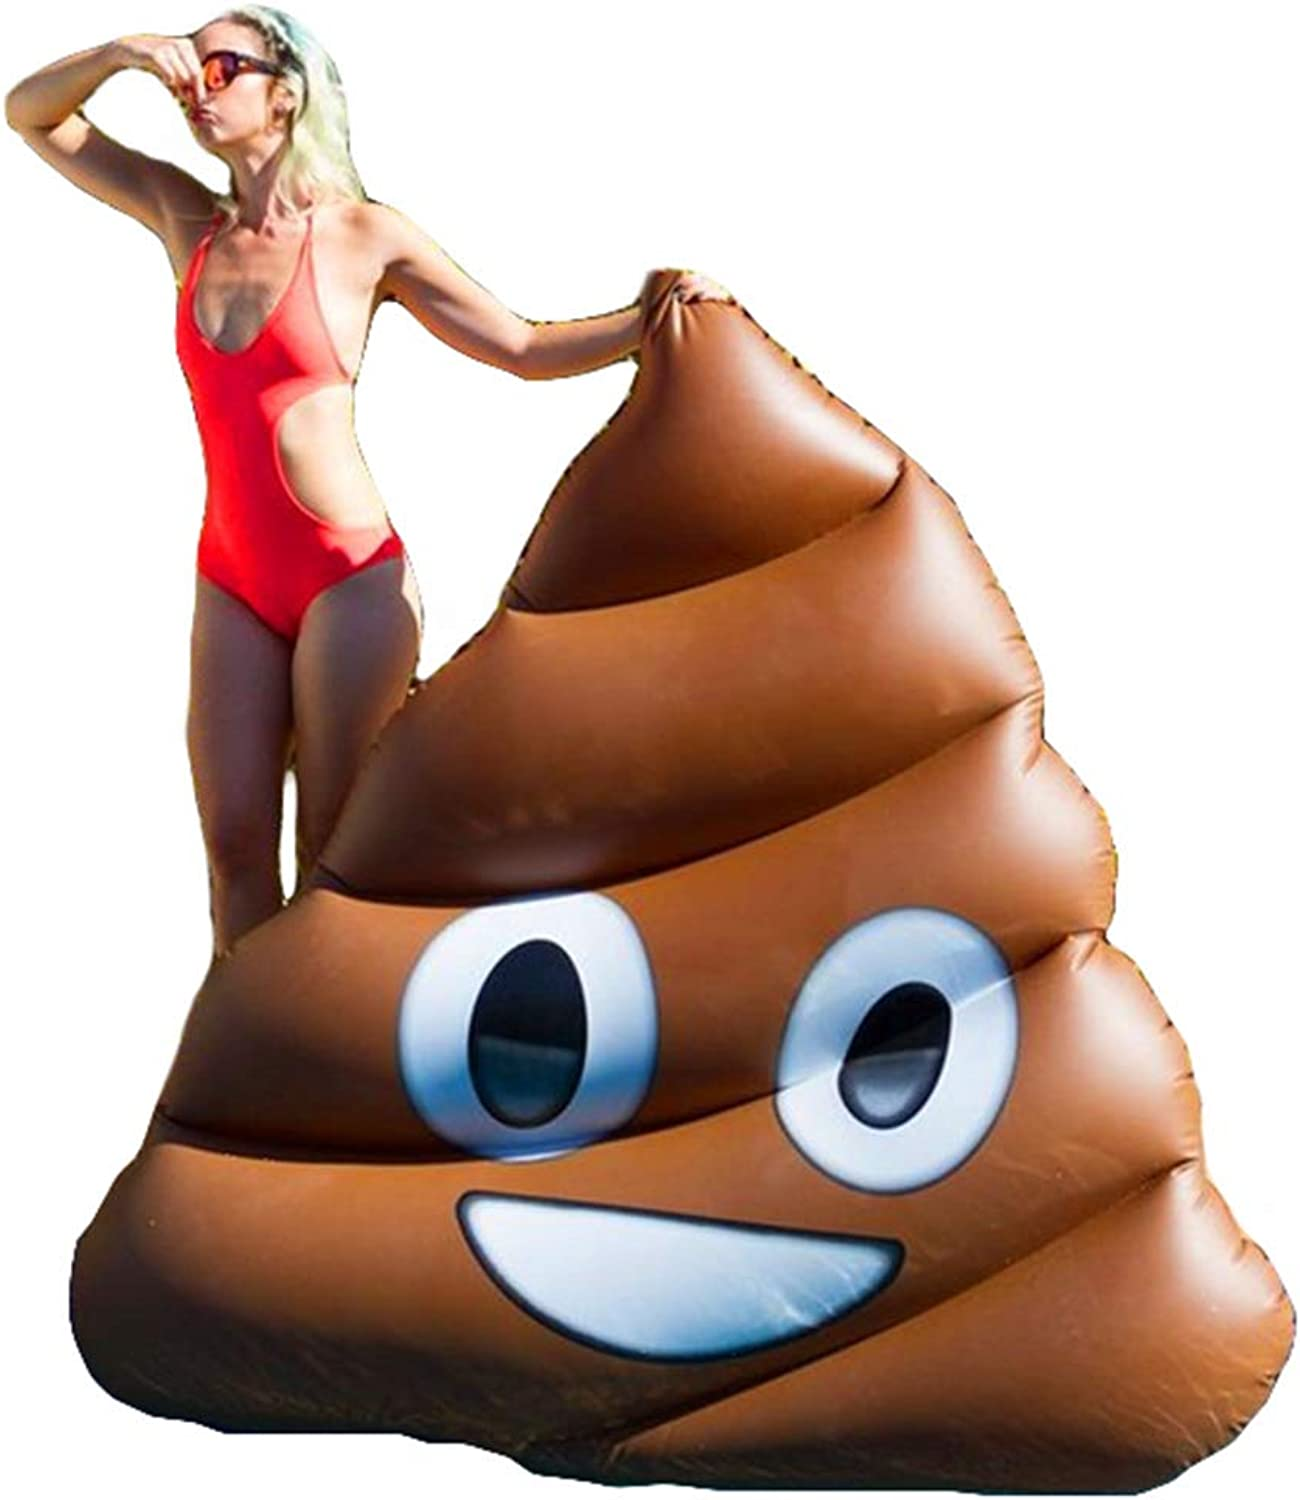 Giant Poop Inflatable Float, Adult Leisure Inflatable Toy for Swimming Pool Party and Water Fun